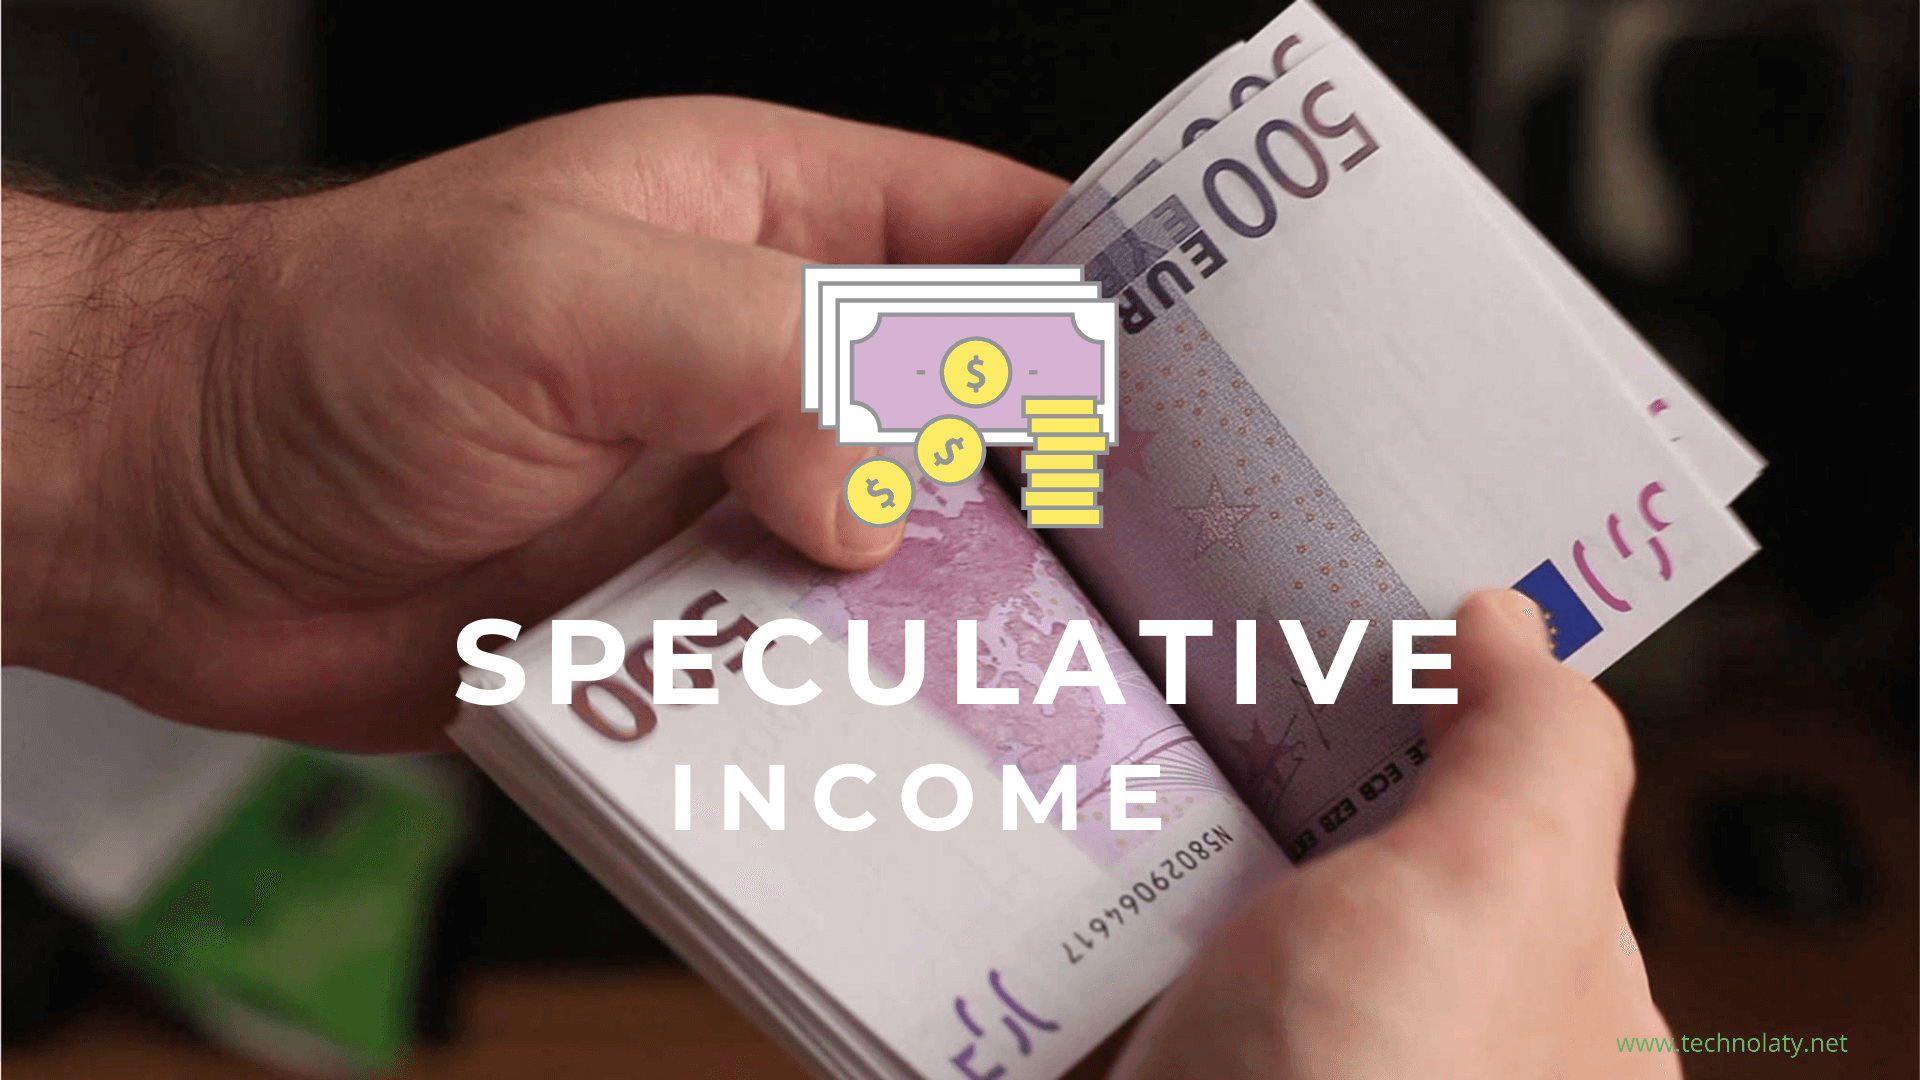 Everything About Speculative Income